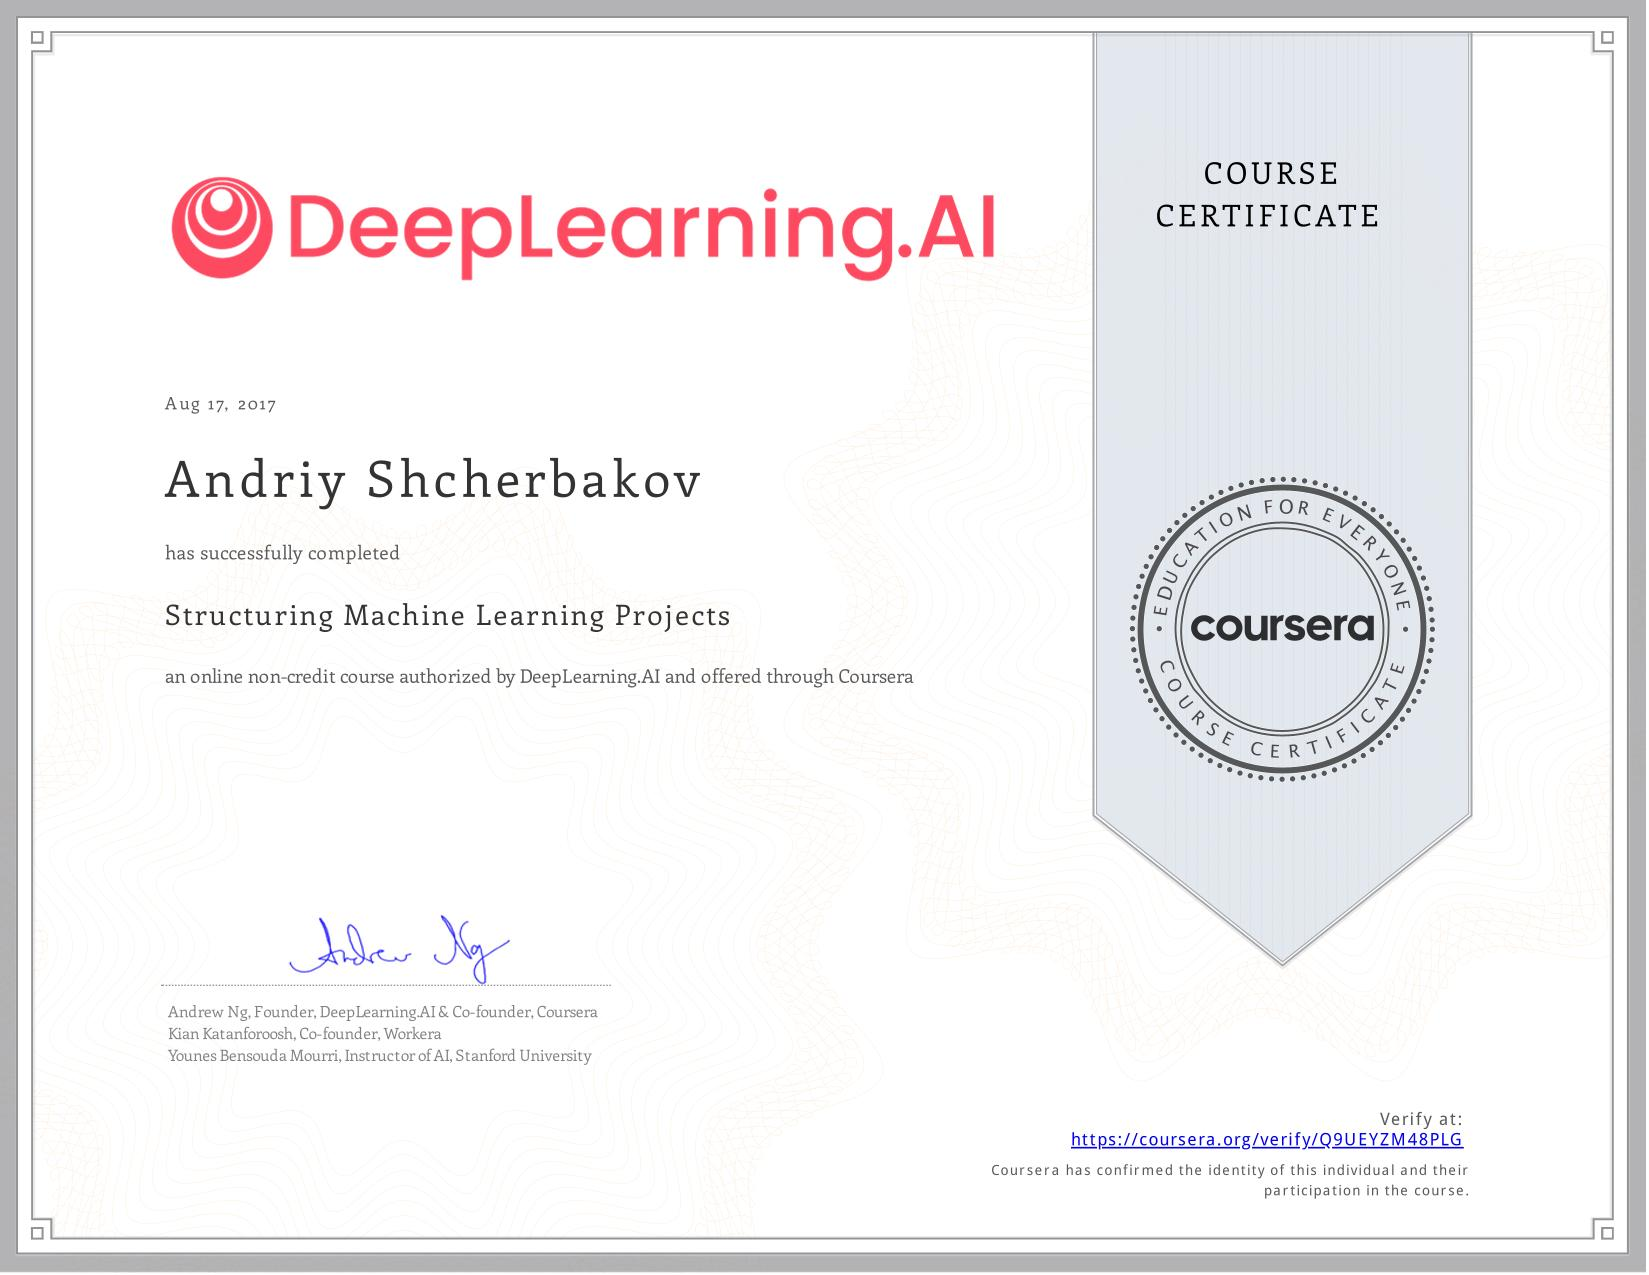 View certificate for Andriy Shcherbakov, Structuring Machine Learning Projects, an online non-credit course authorized by  & deeplearning.ai and offered through Coursera